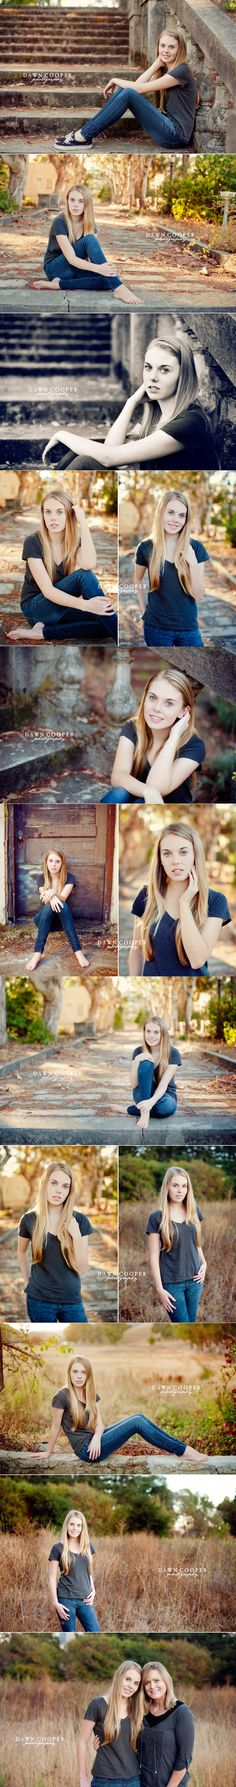 Sweet 16 | Petaluma Portrait Photographer » Dawn Cooper Photography